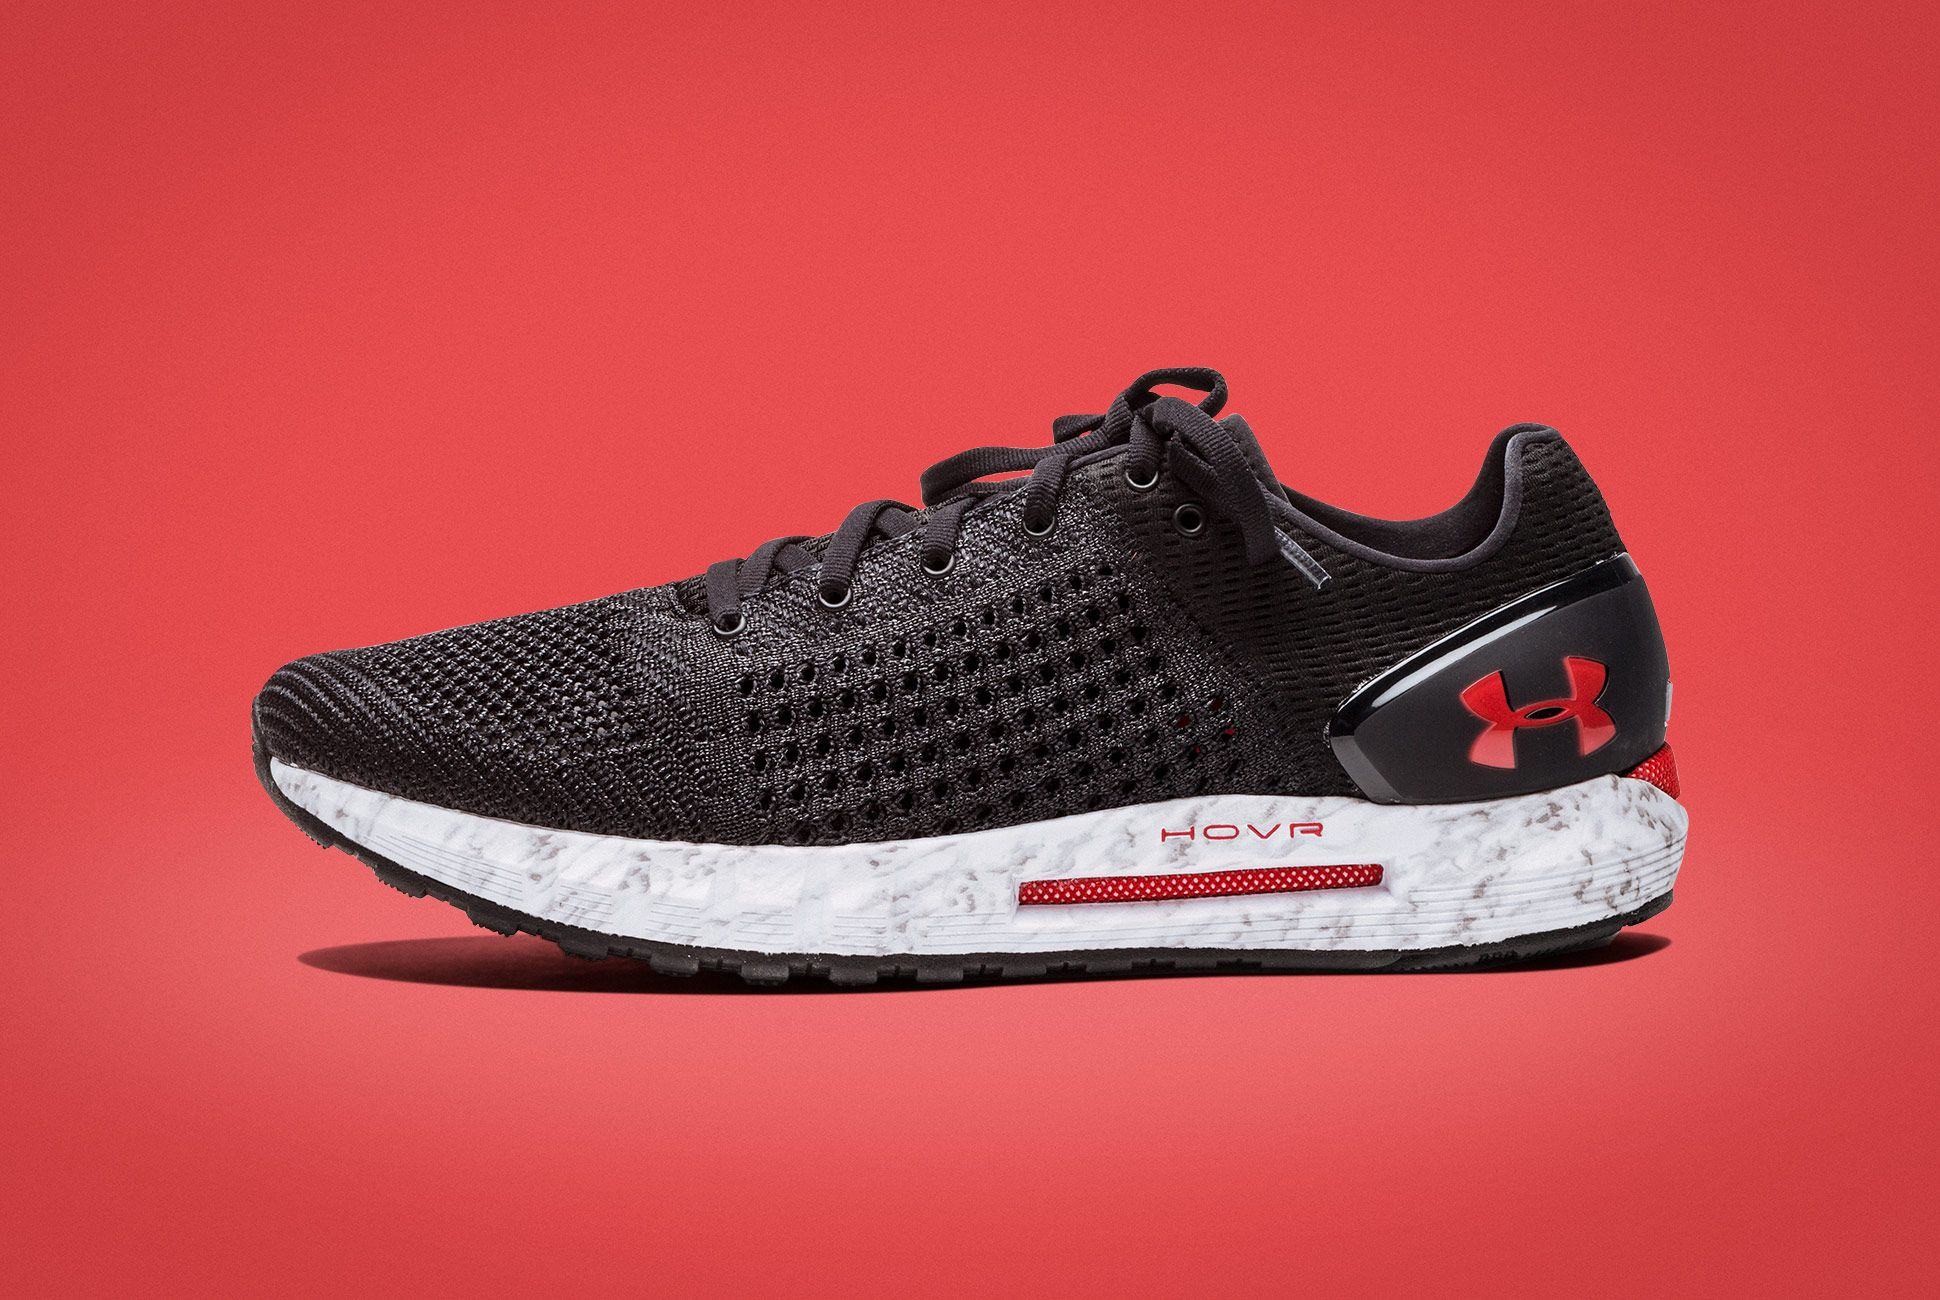 HOVR Sonic Is the Newest Wave in Foam